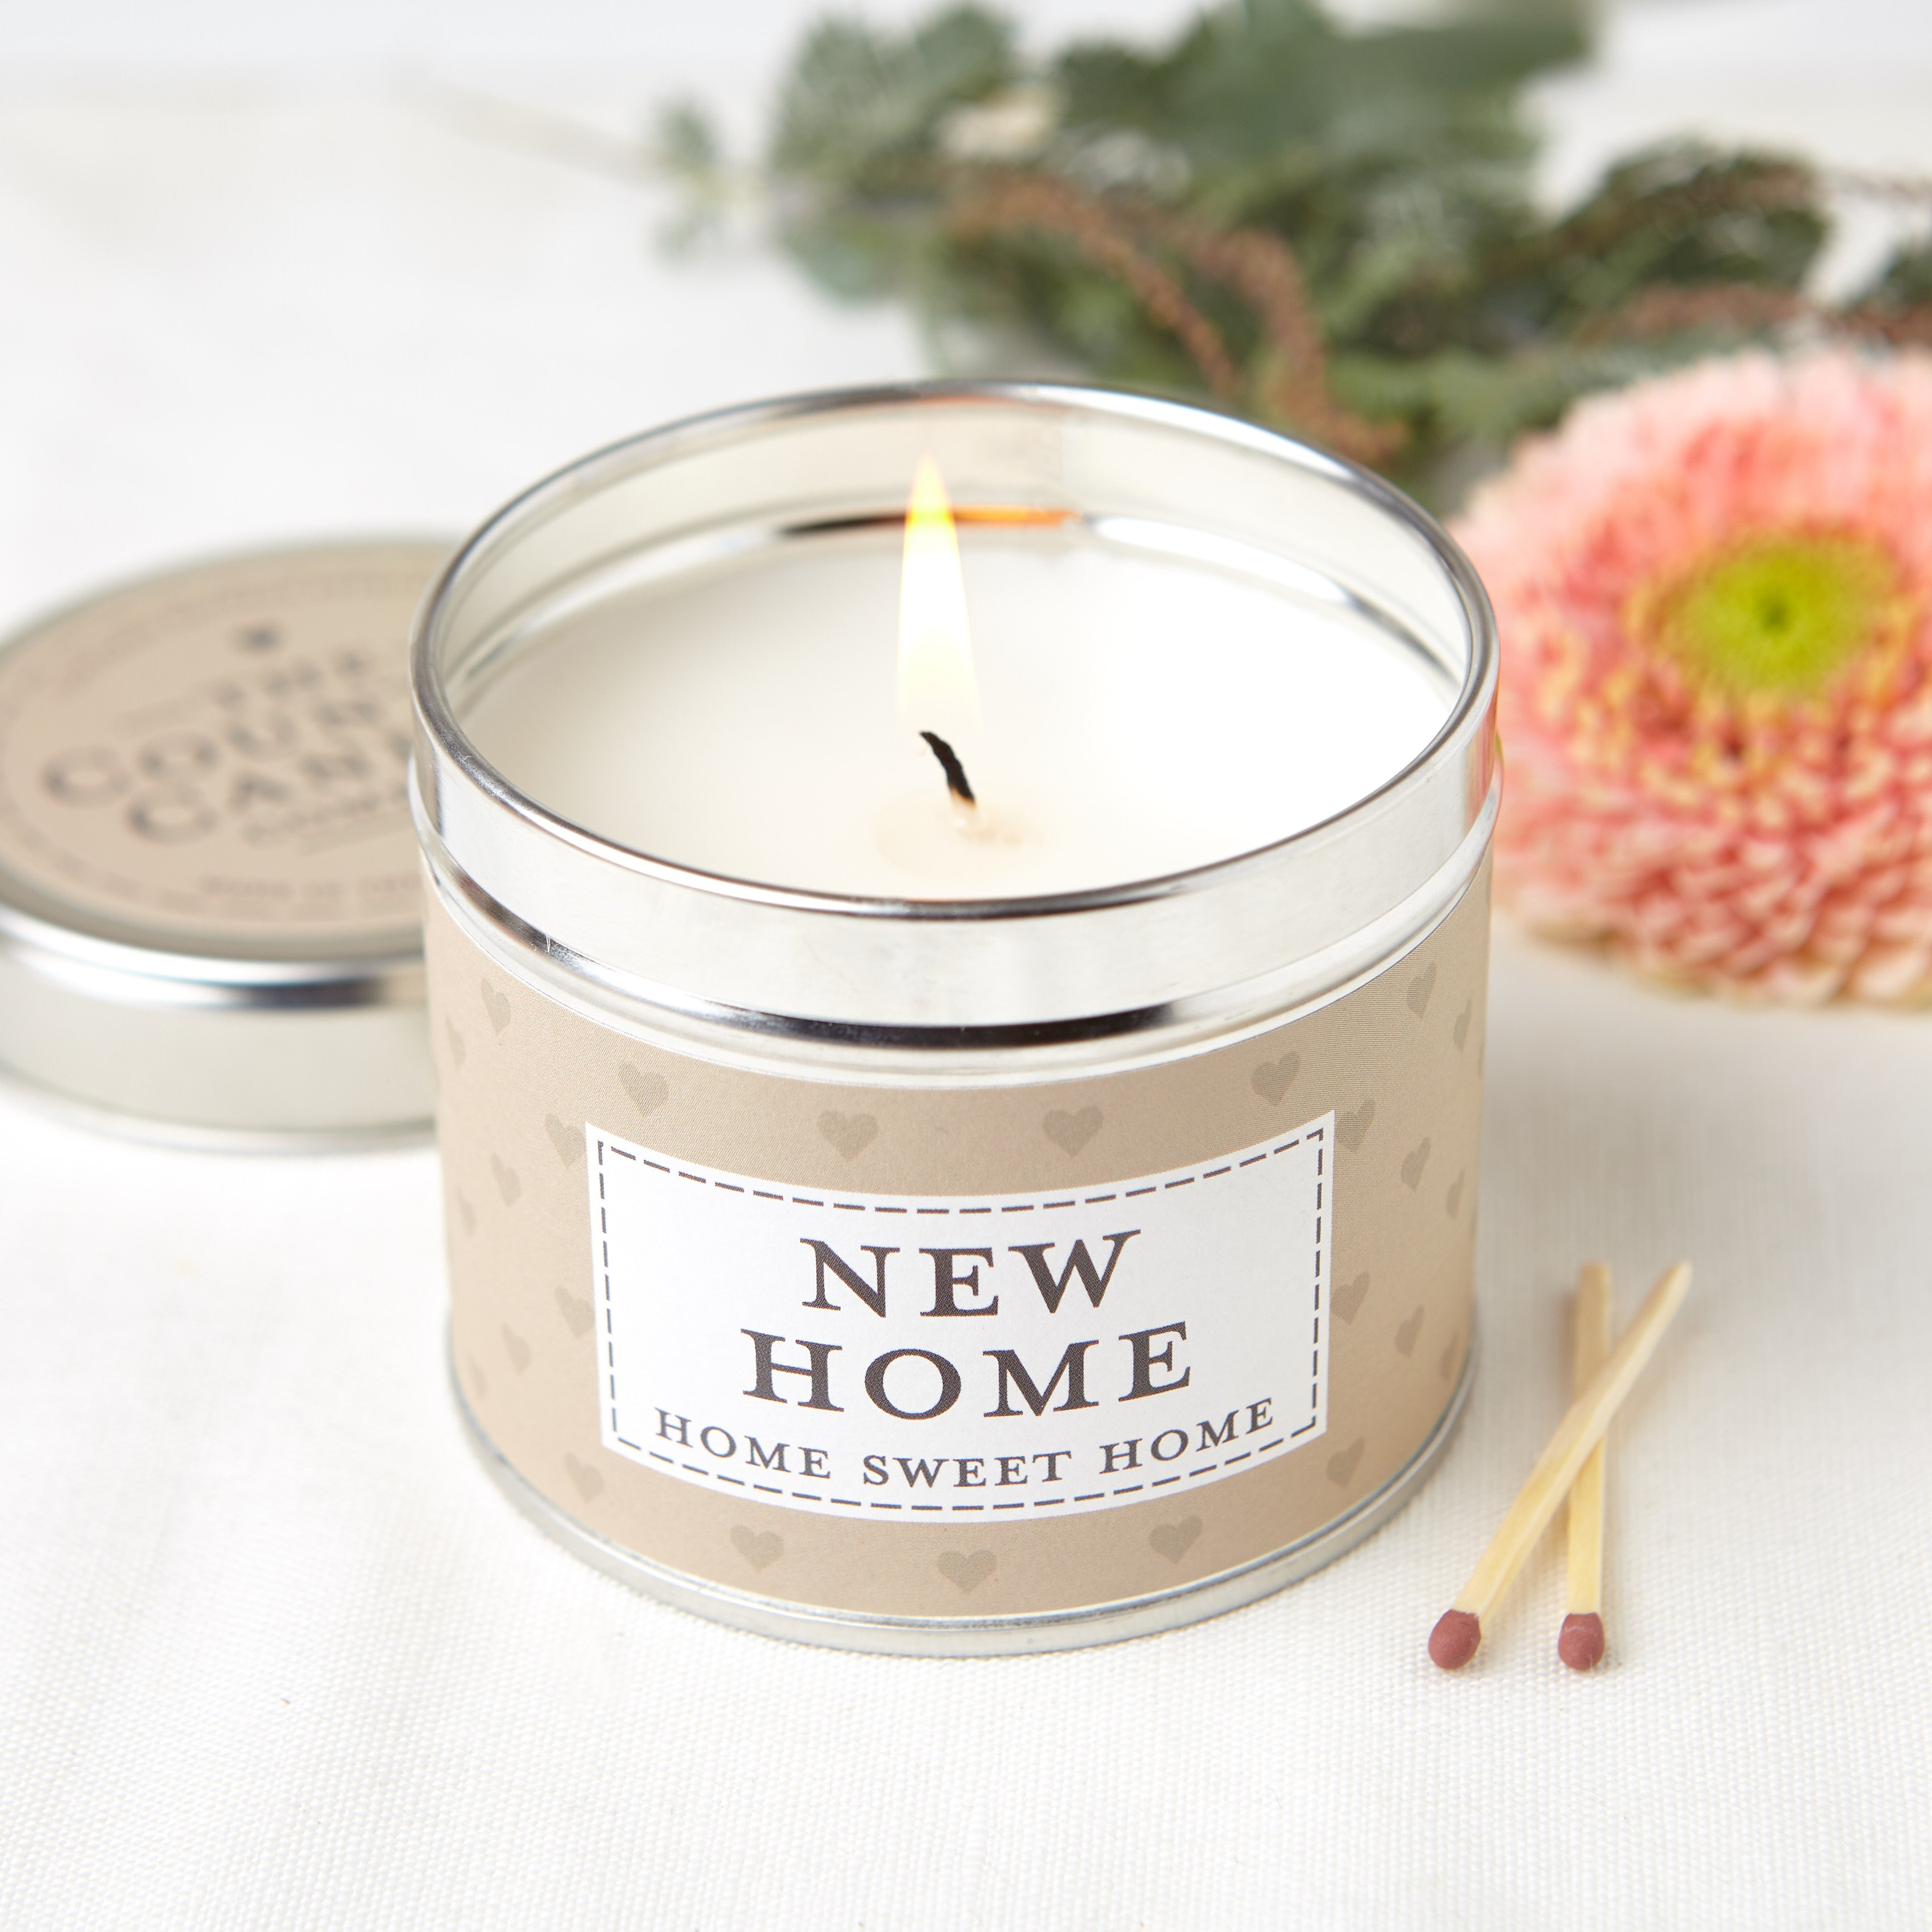 New Home - Ilmkerti - The Country Candle Company